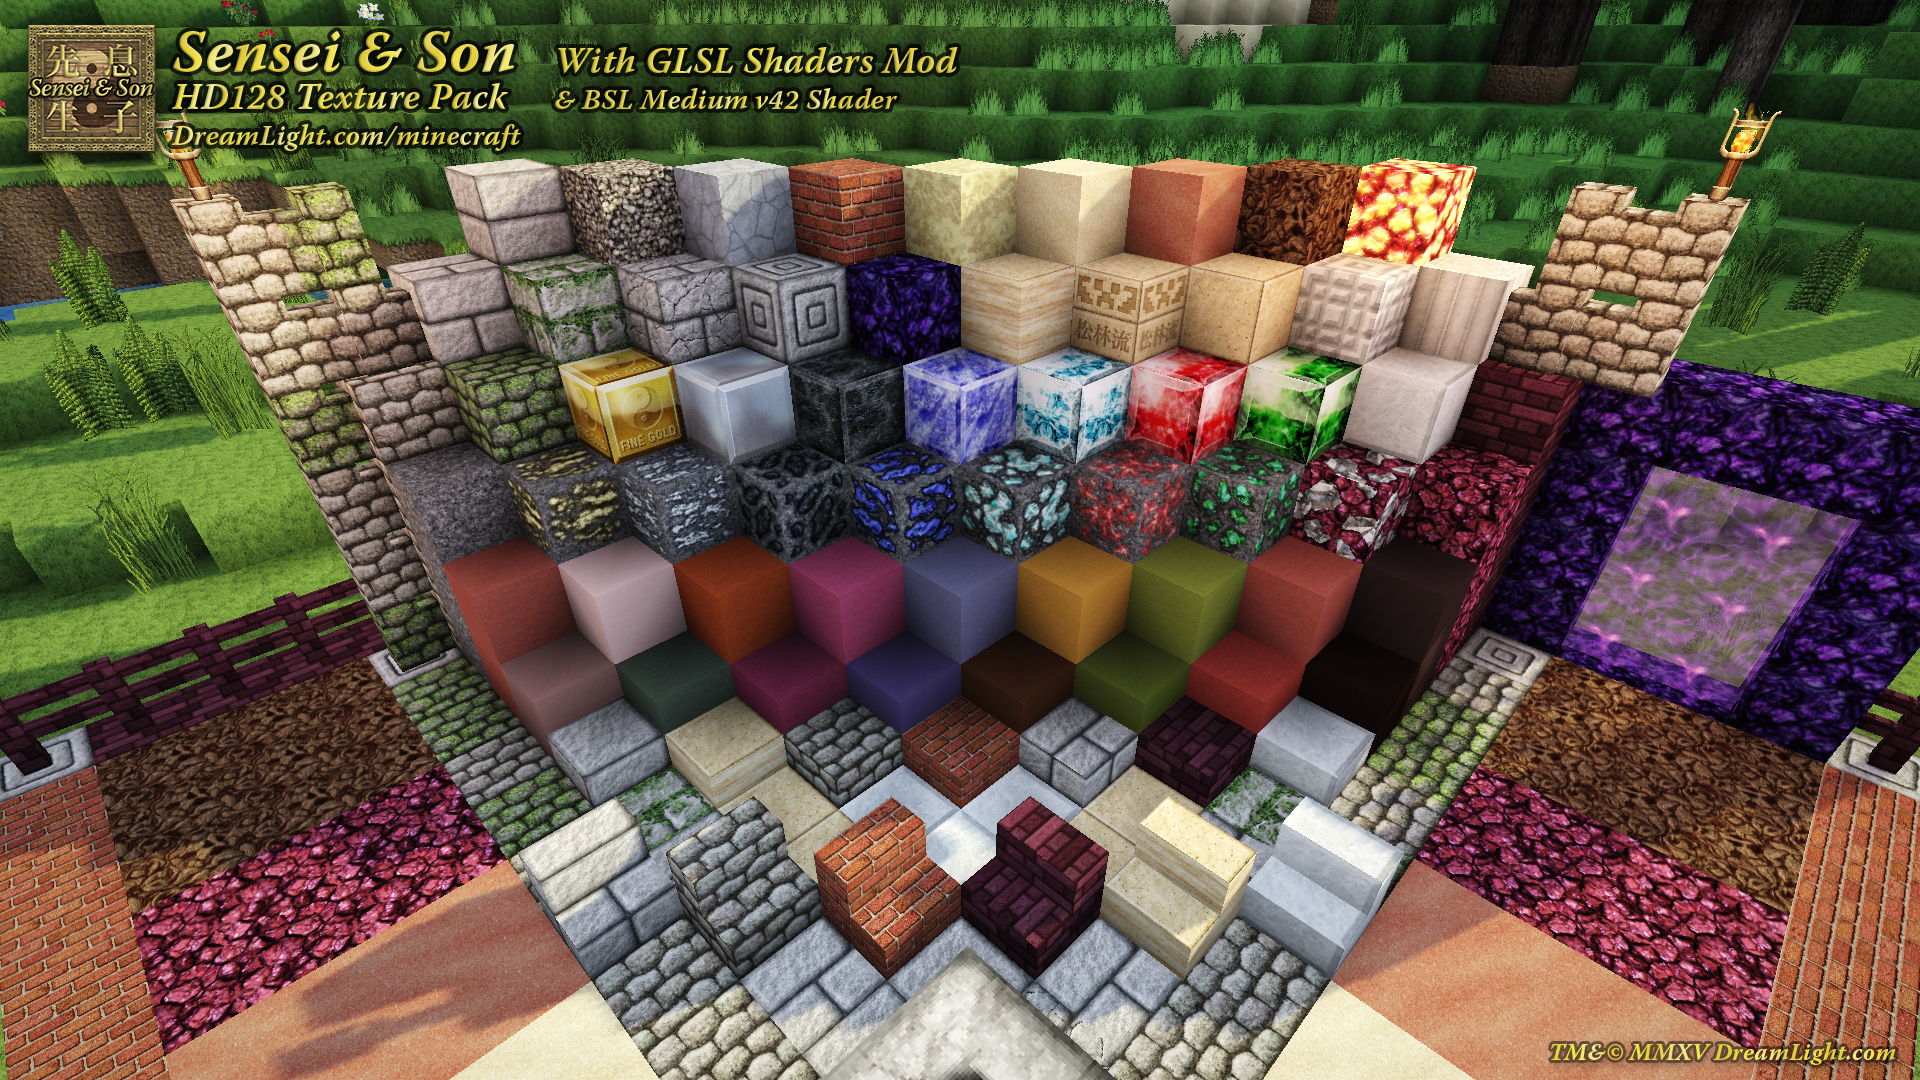 Teaching Teens 3D Graphics with Video Games Like Minecraft